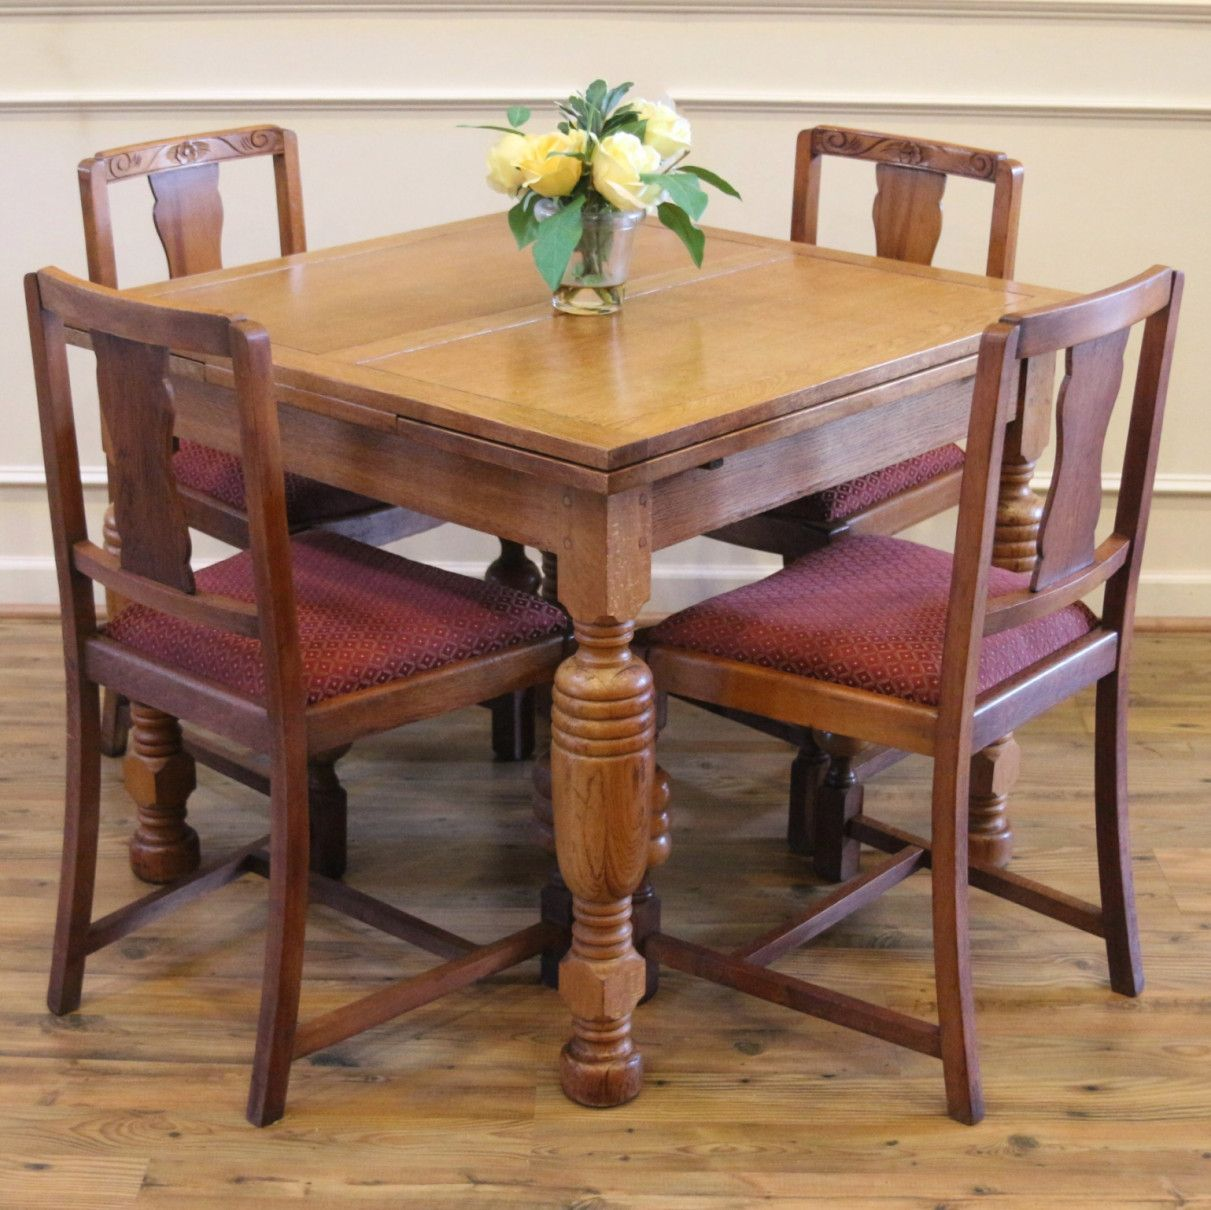 Antique Oak Table and Chairs for Sale - Office Furniture for Home Check  more at http - Antique Oak Table And Chairs For Sale - Office Furniture For Home